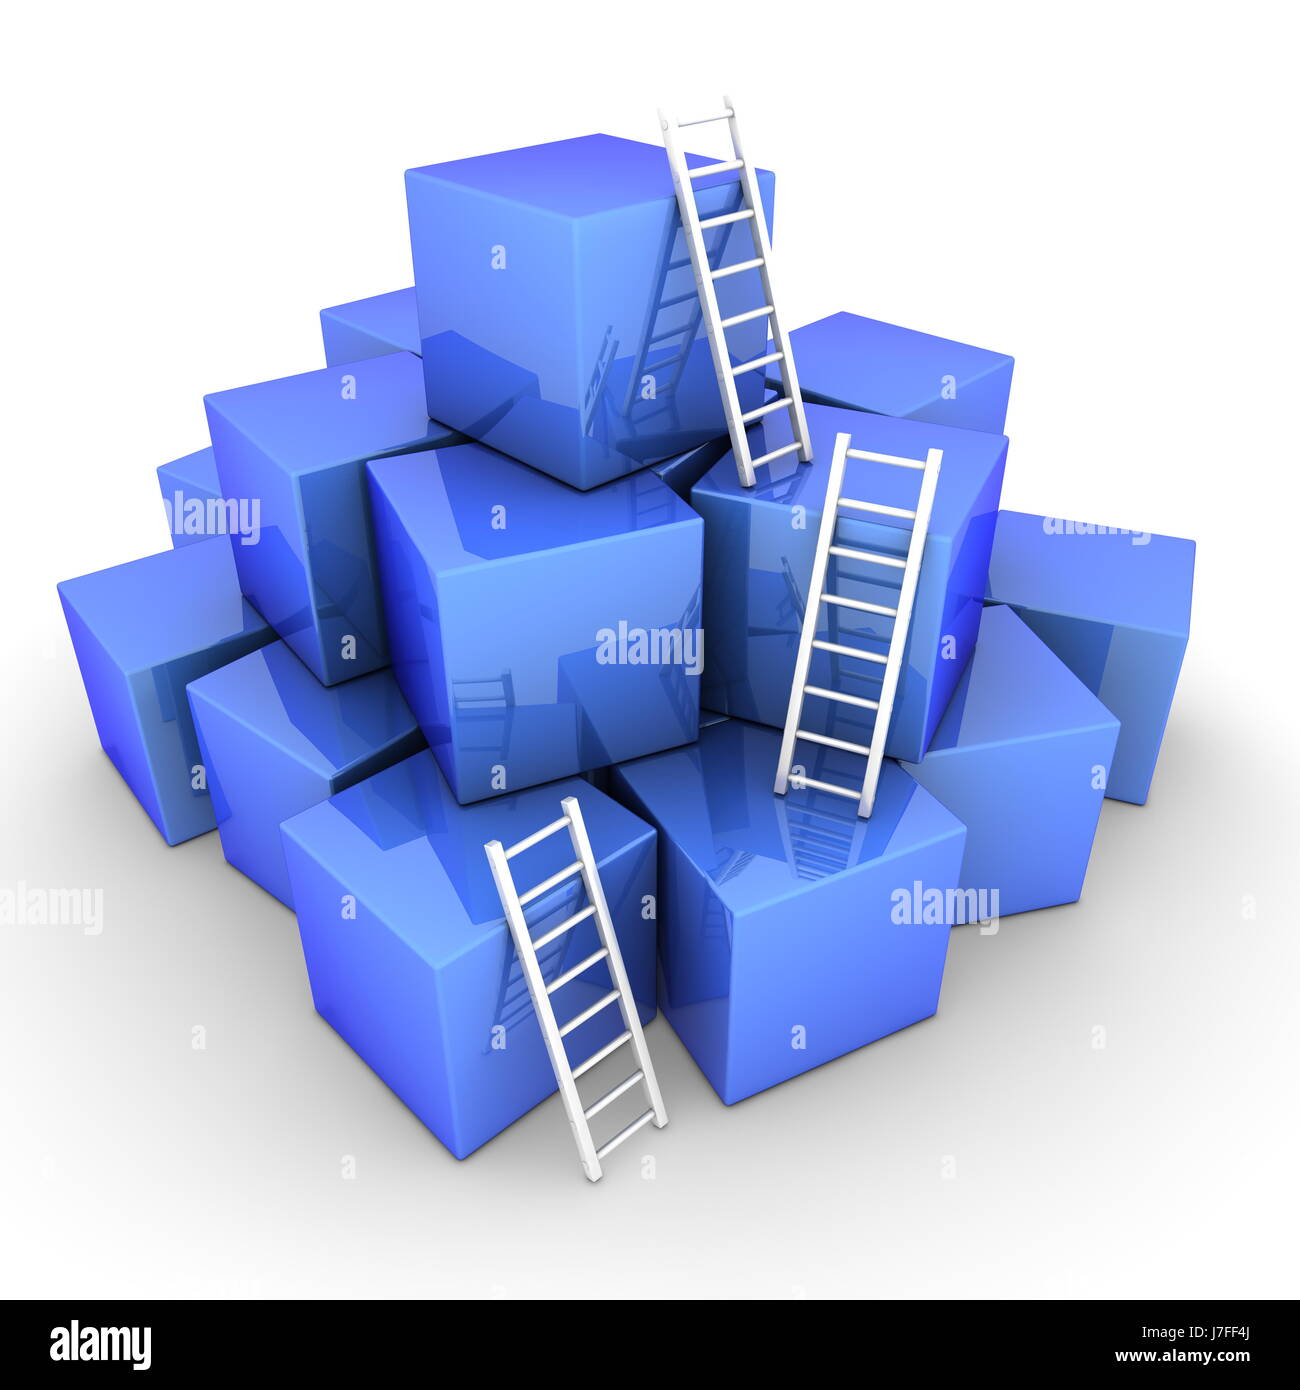 blue stack box boxes glossy ladder heap pile white cubes blue stairs object - Stock Image